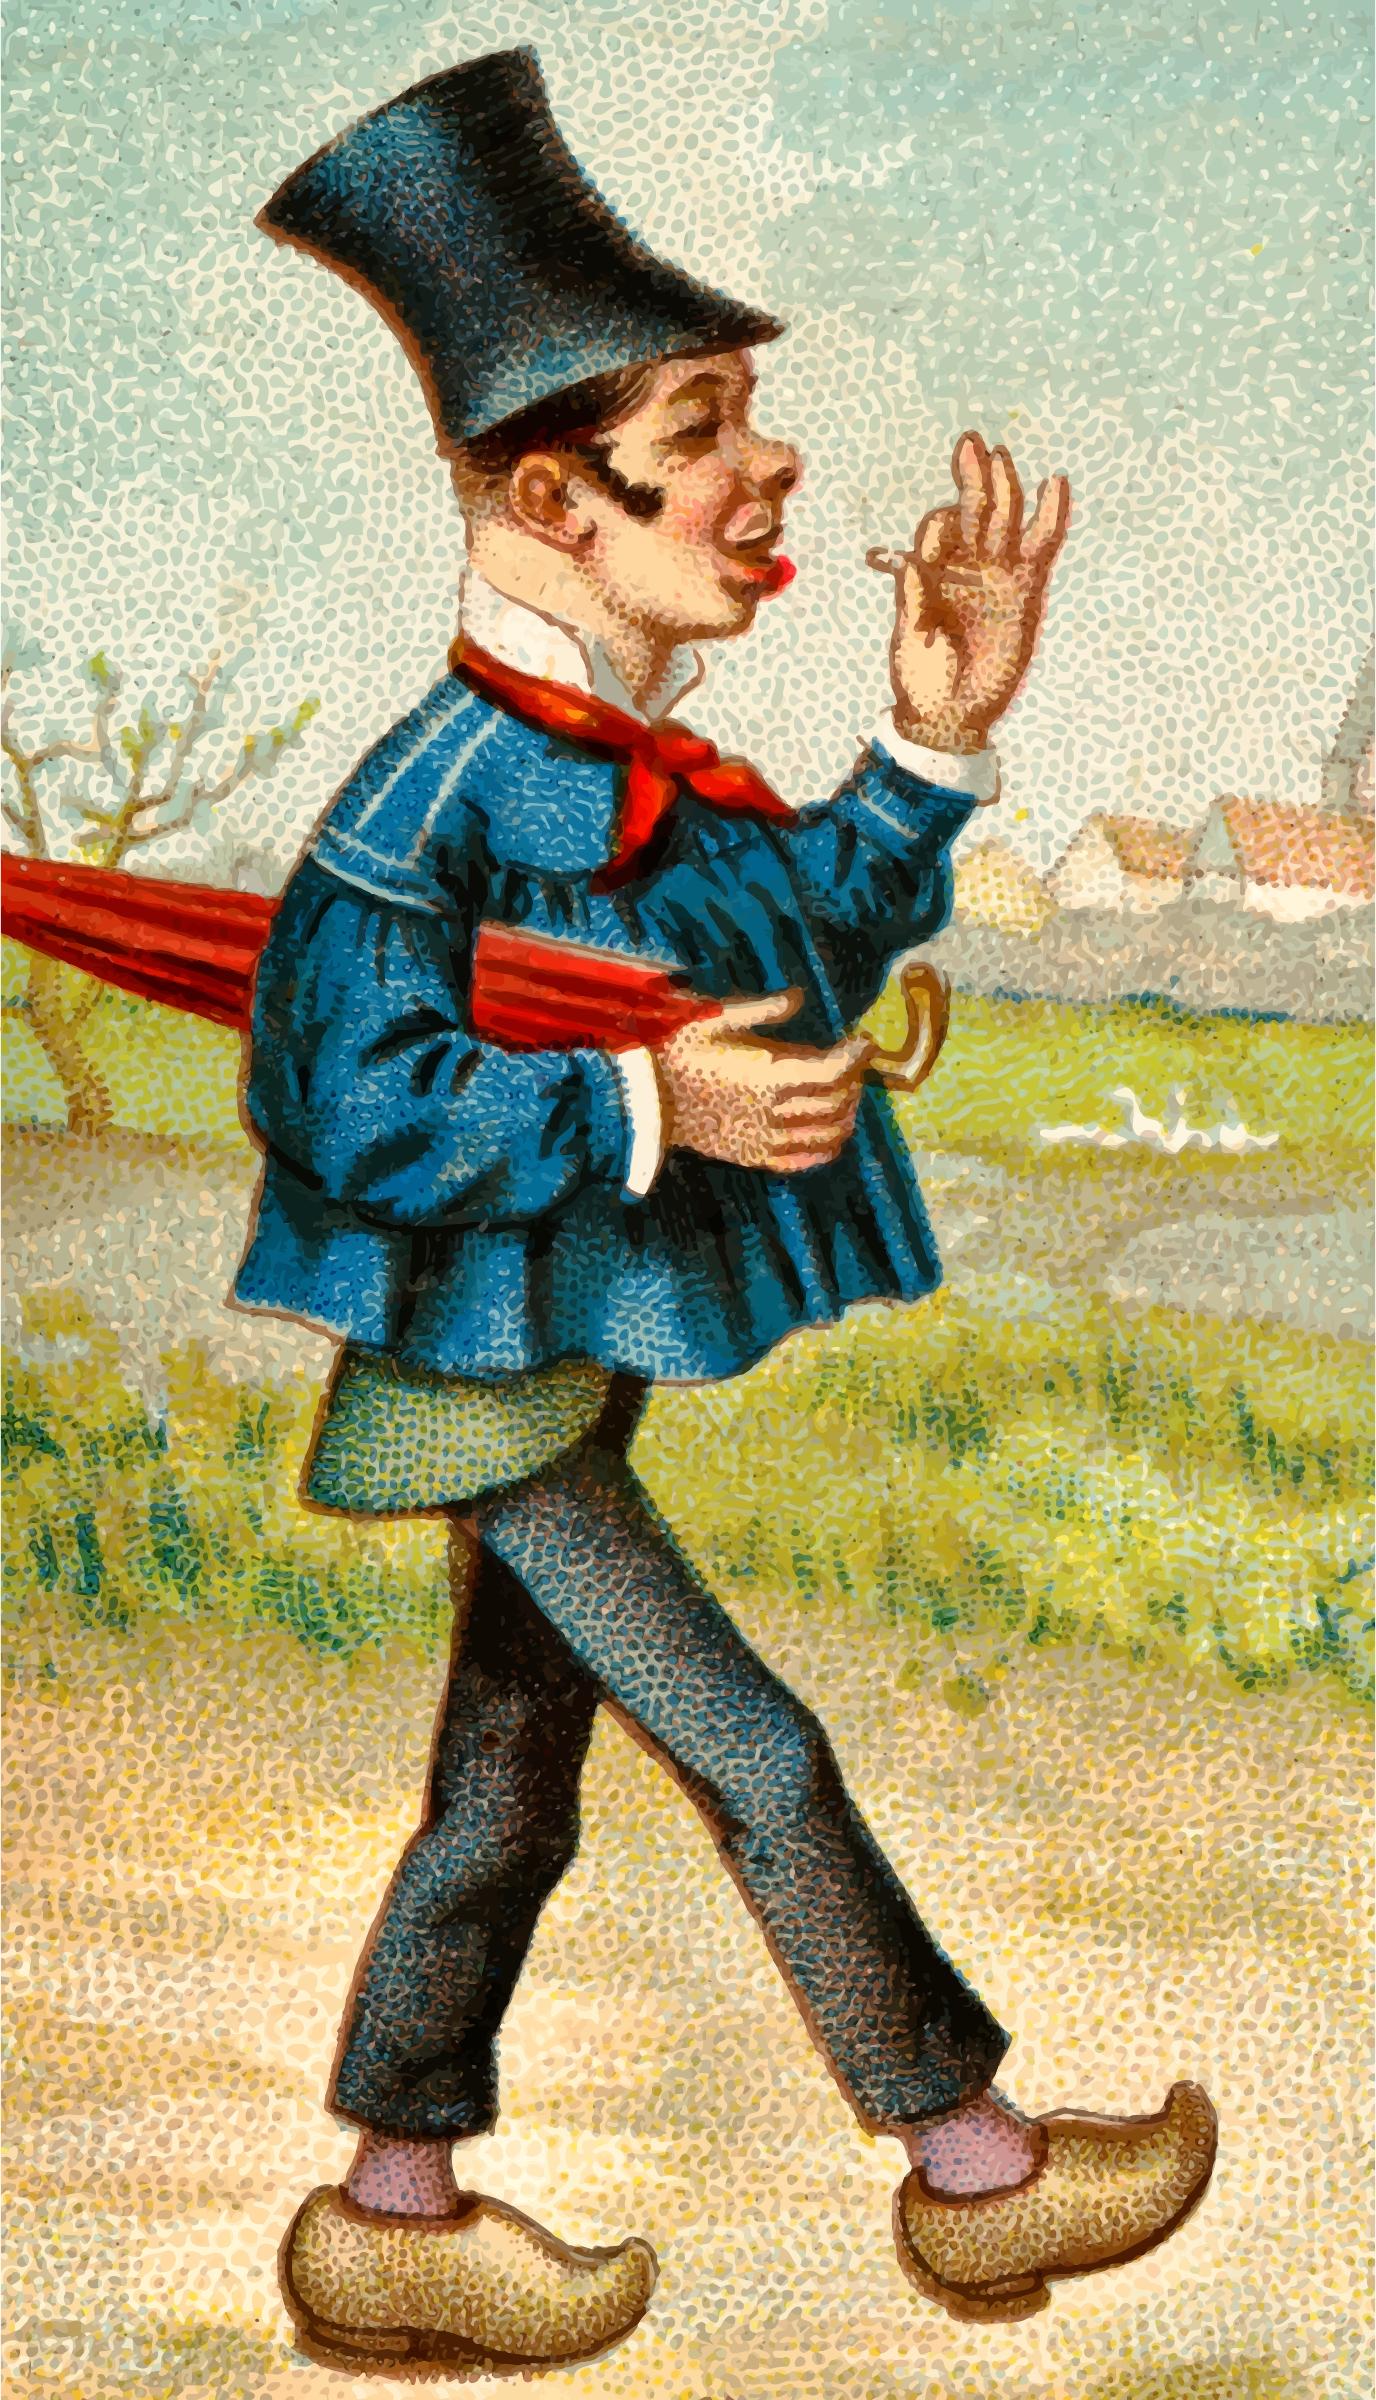 Cigarette card - French, Country by Firkin